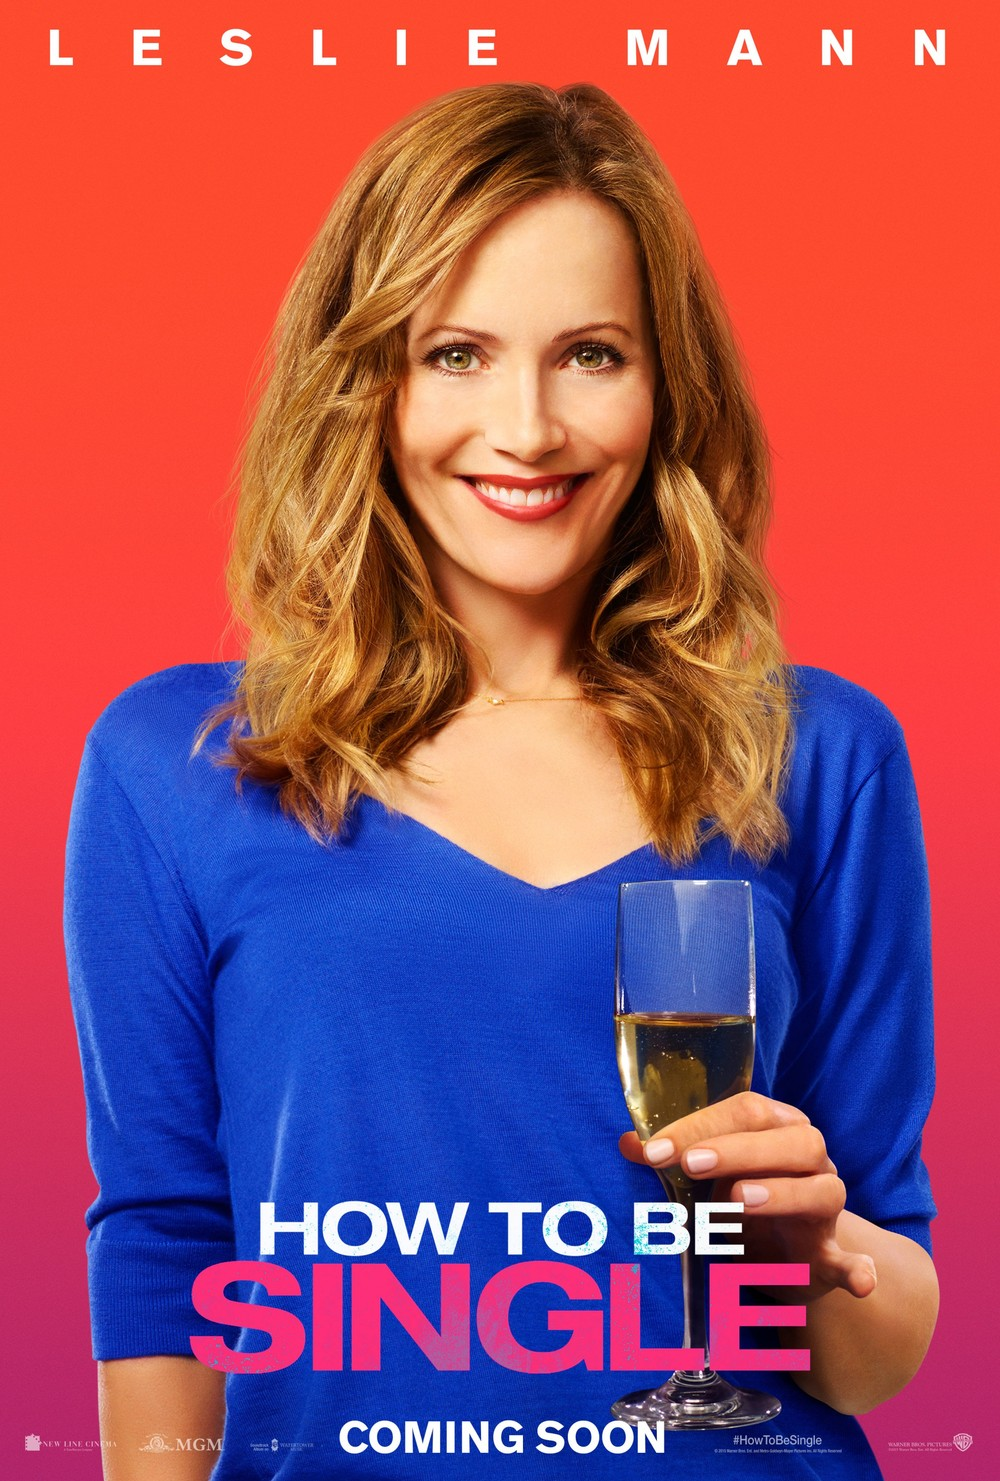 How to Be Single DVD Release Date | Redbox, Netflix ...